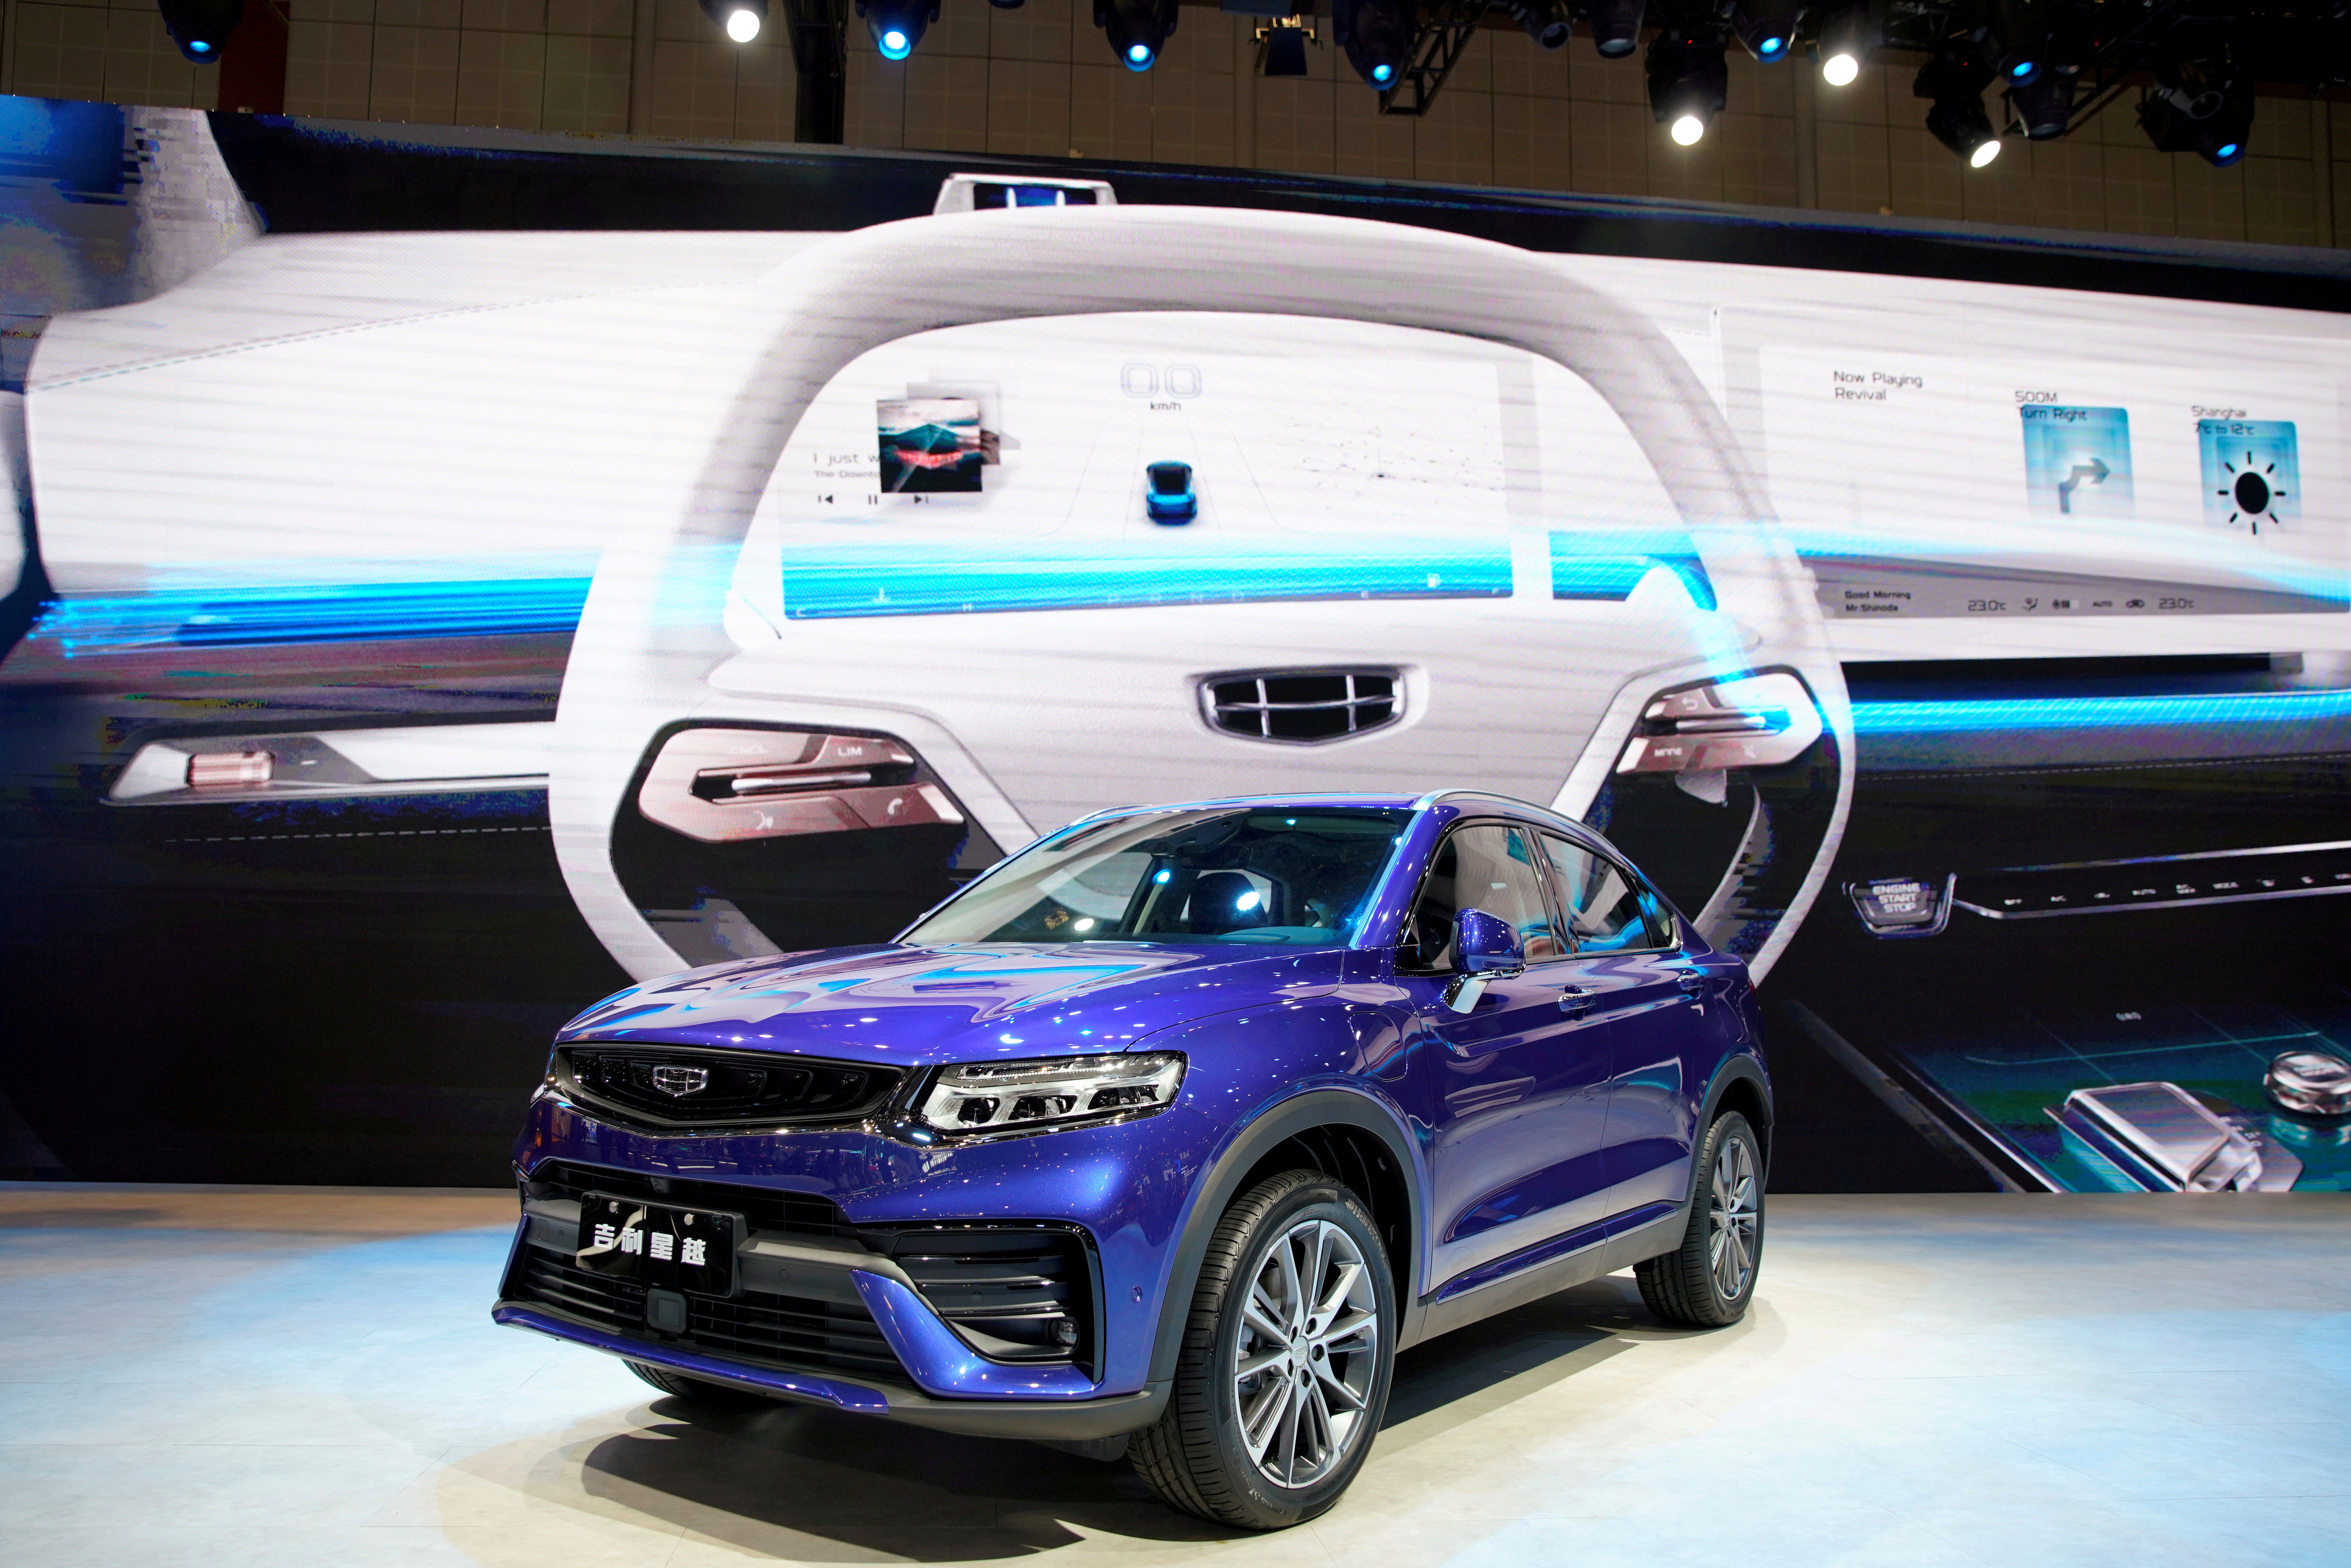 A Geely Xingyue Coupe SUV is seen displayed at the second media day for the Shanghai auto show in Shanghai, China April 17, 2019.  REUTERS/Aly Song